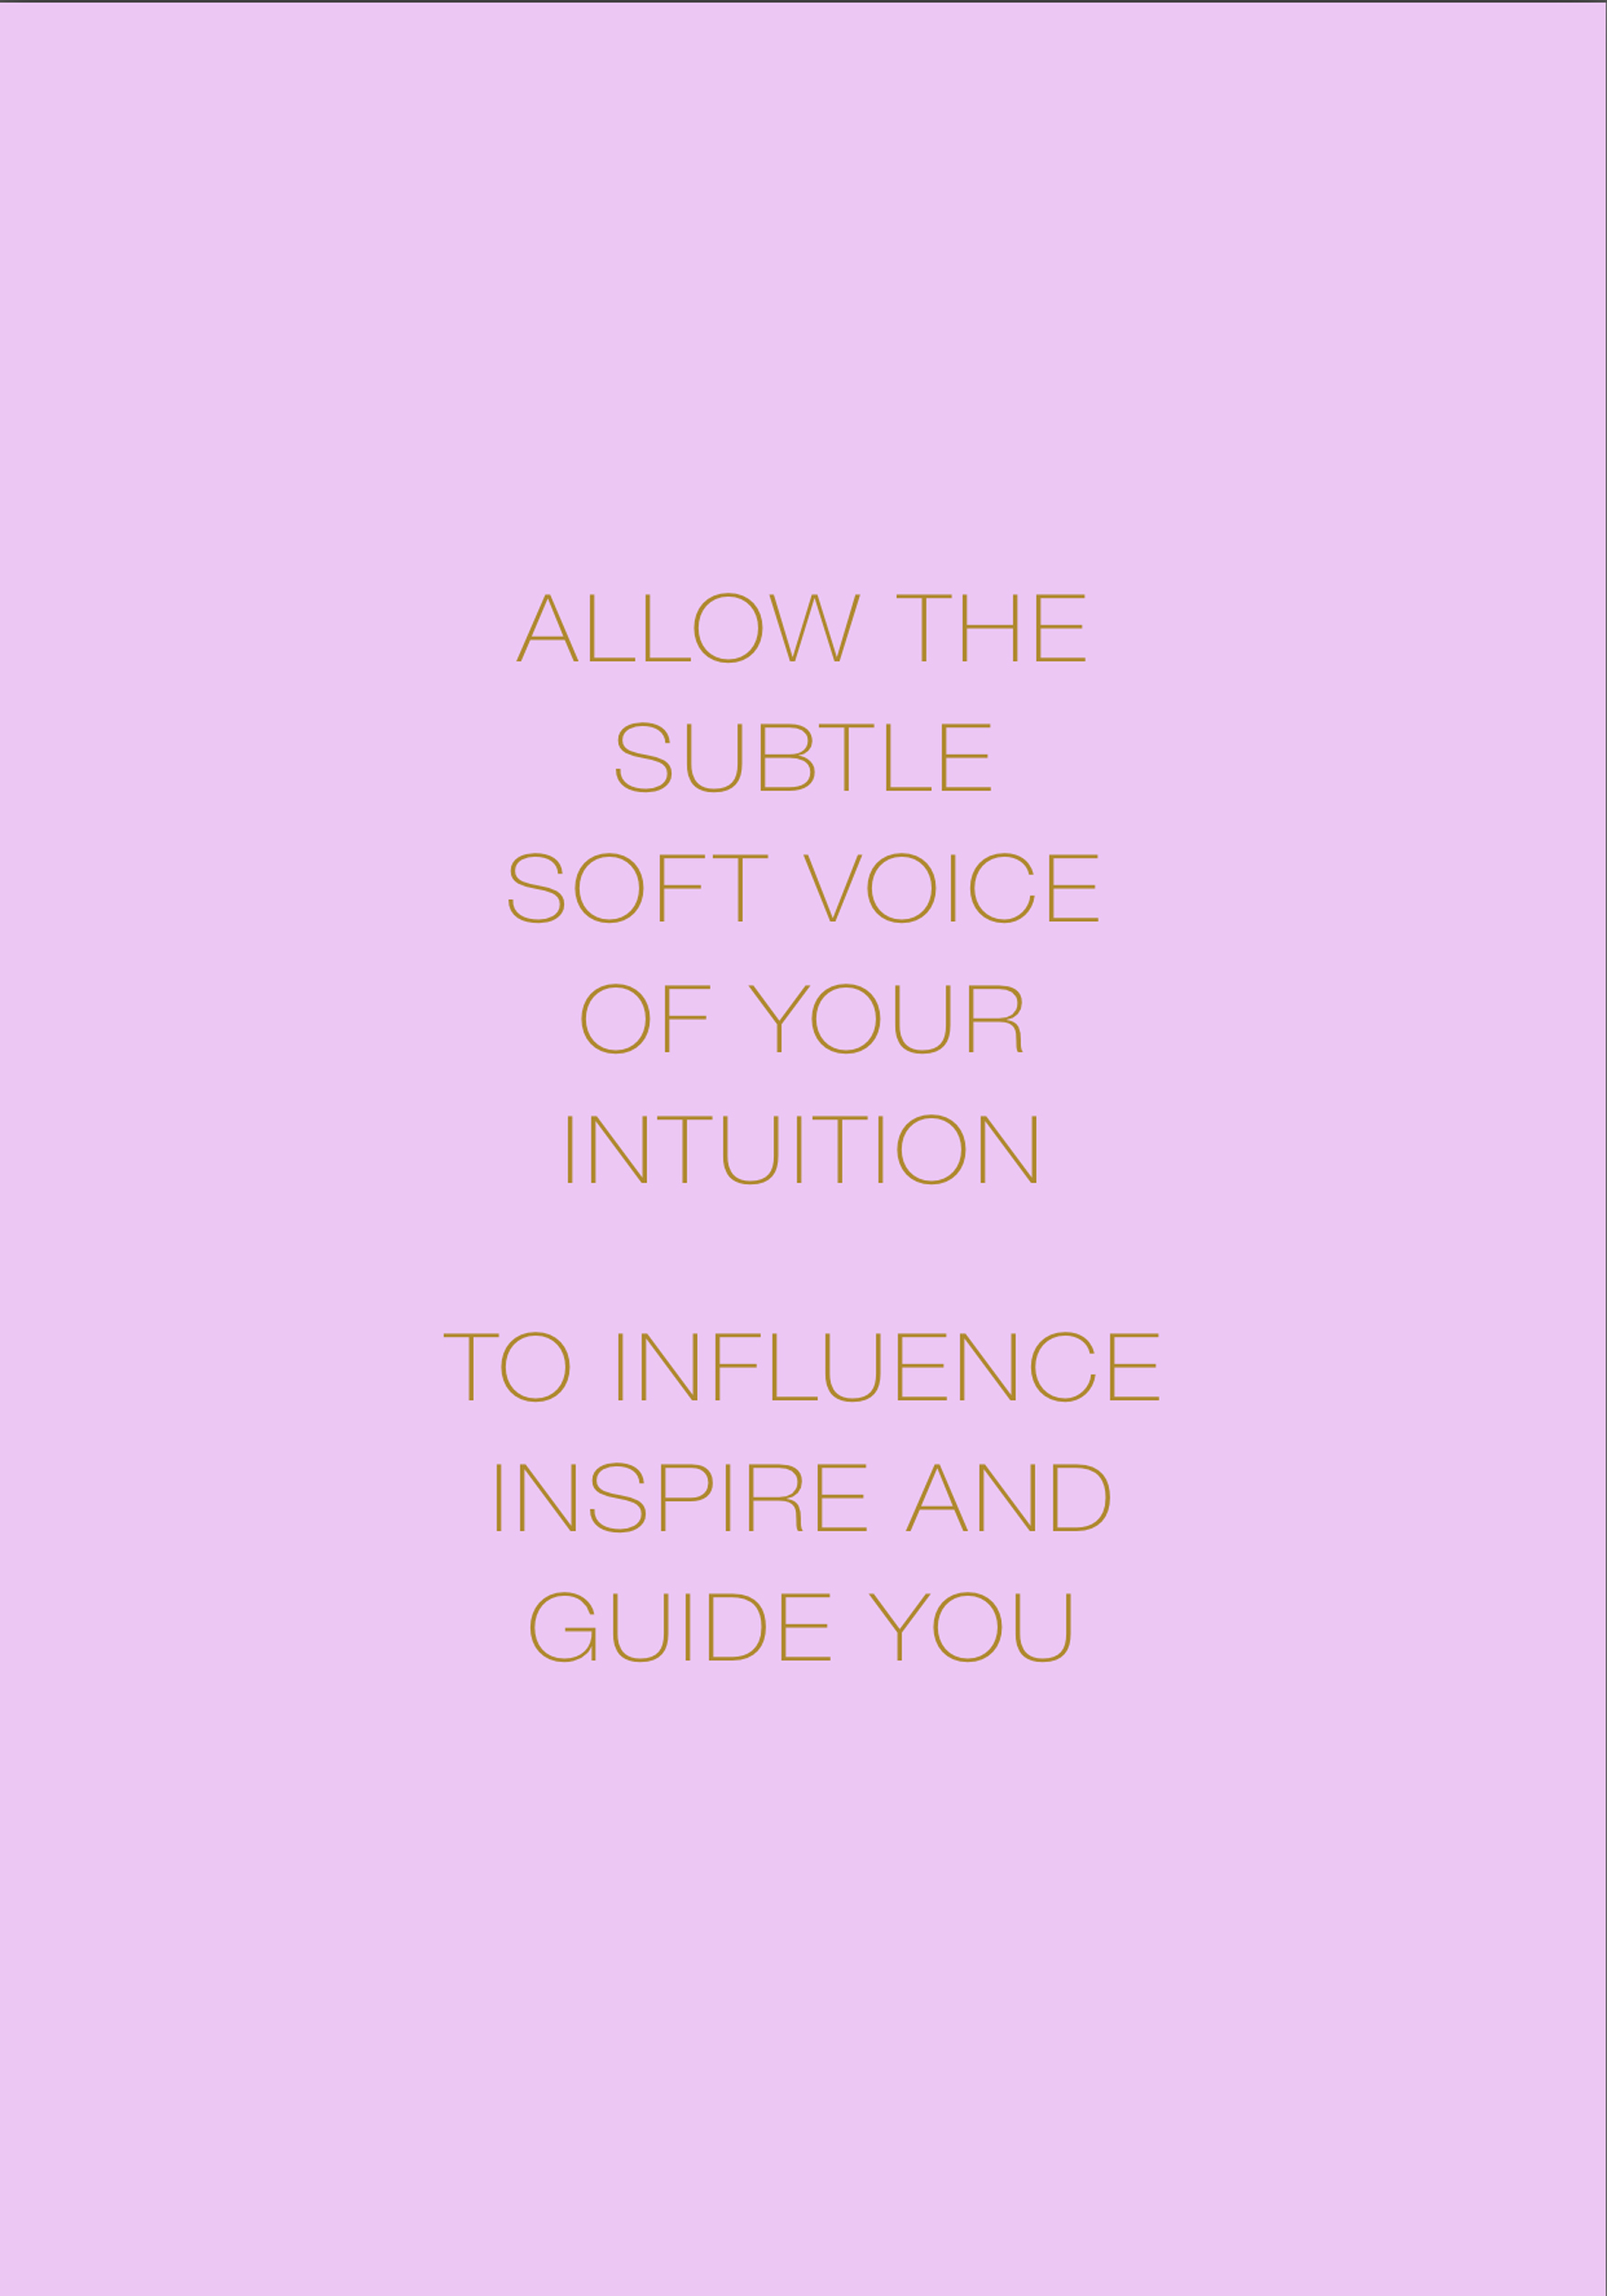 Inspiration Mantra: Allow the Subtle Soft Voice of Your Intuition to Influence, Inspire and Guide You